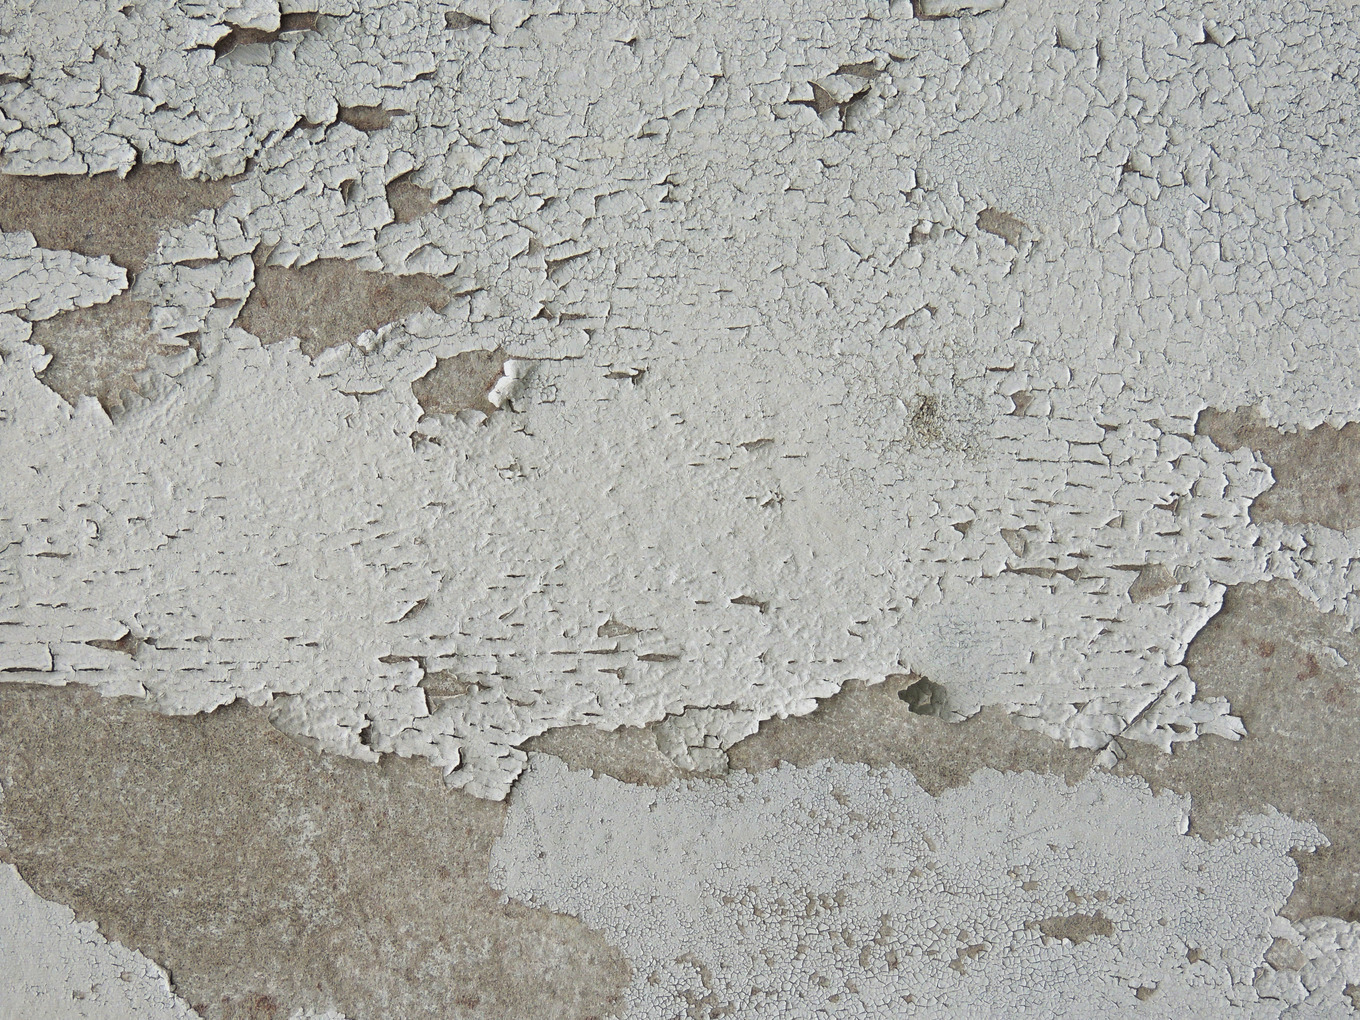 Cracked Paint On Wall Of Old House Abstract Photos On